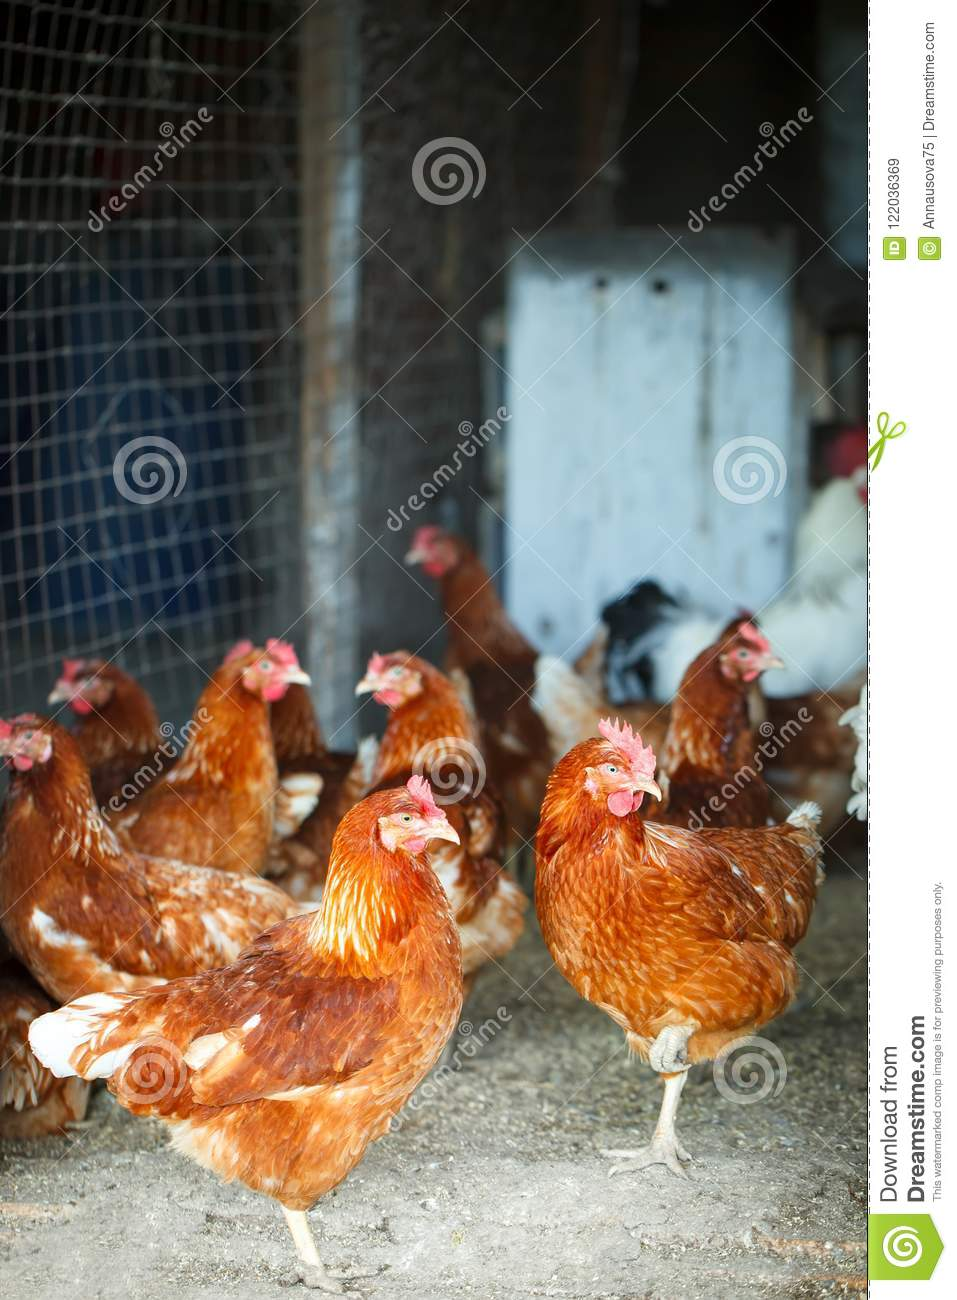 Roosters and hens on a traditional poultry farm. Agriculture.